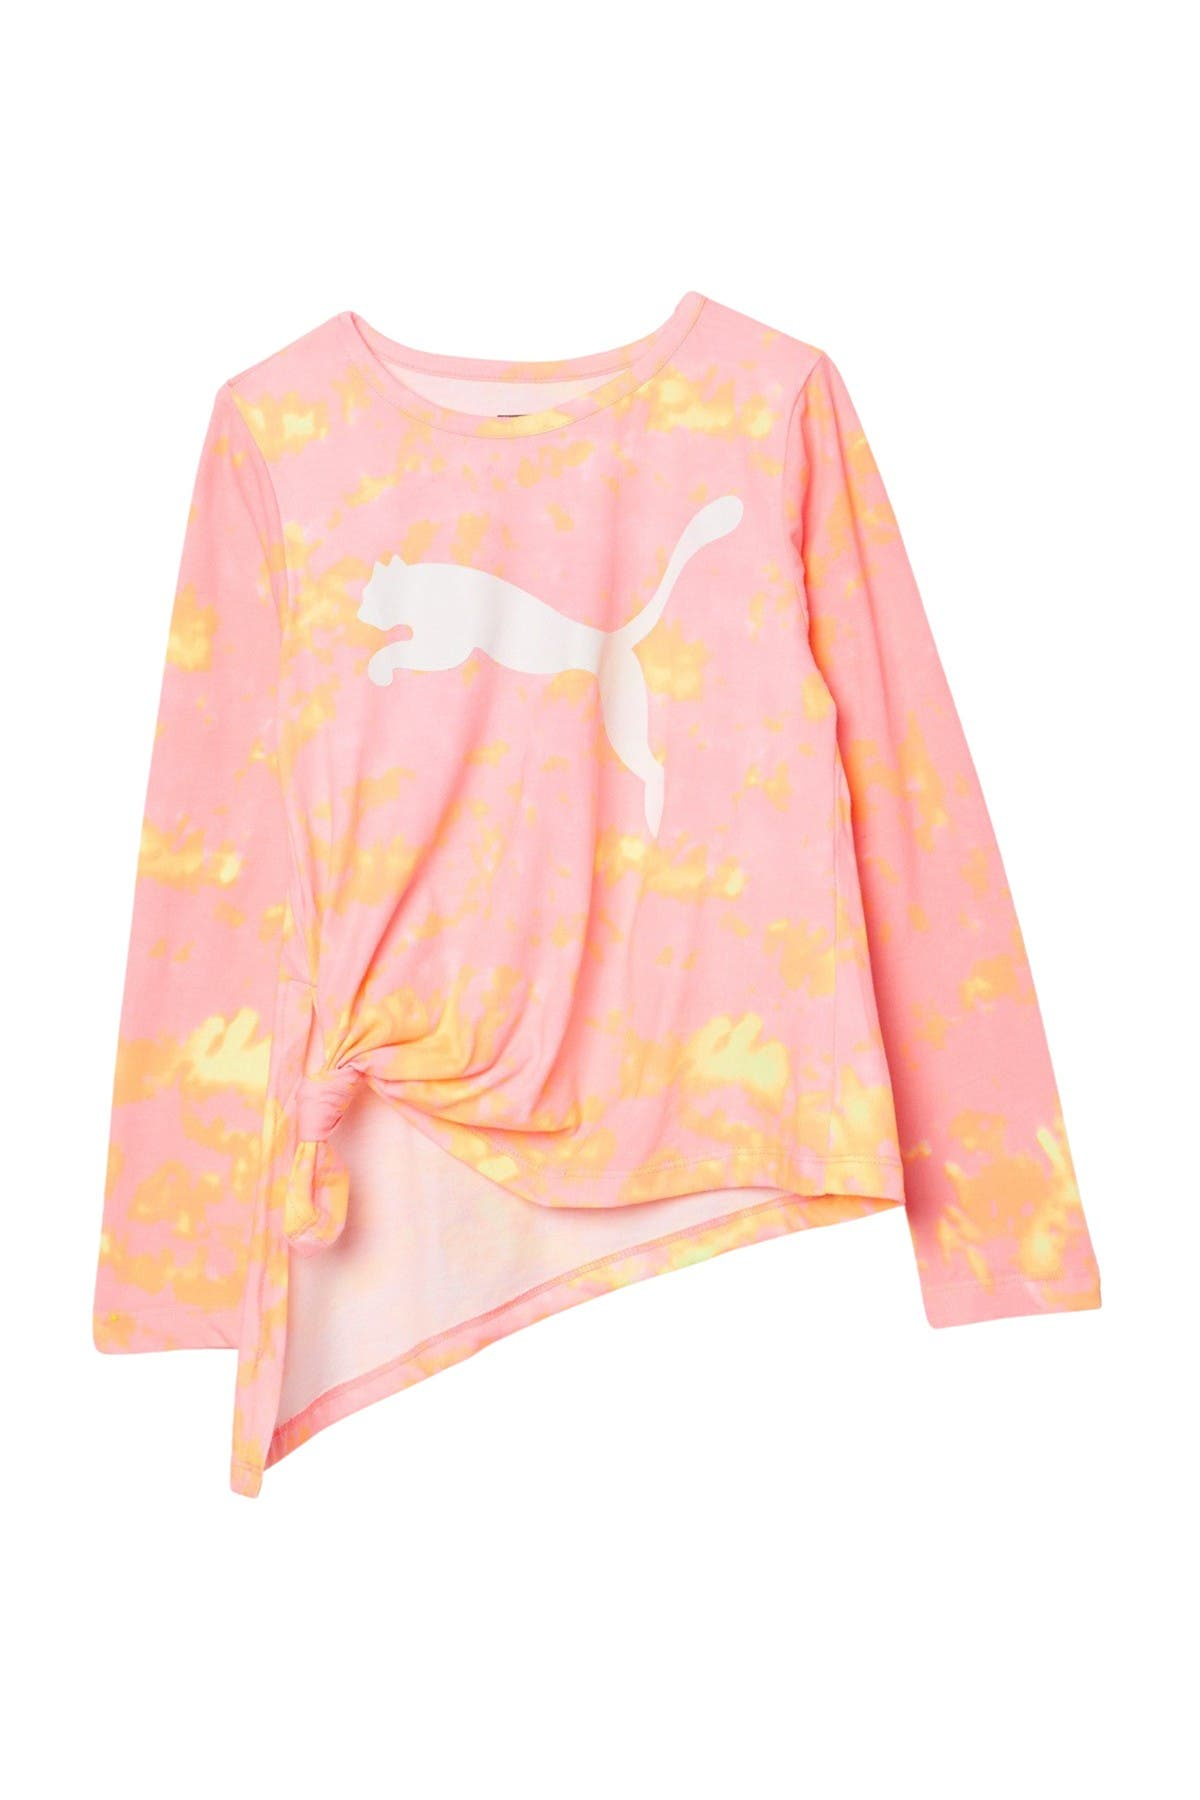 Image of PUMA Long Sleeve Logo Print Knotted Top